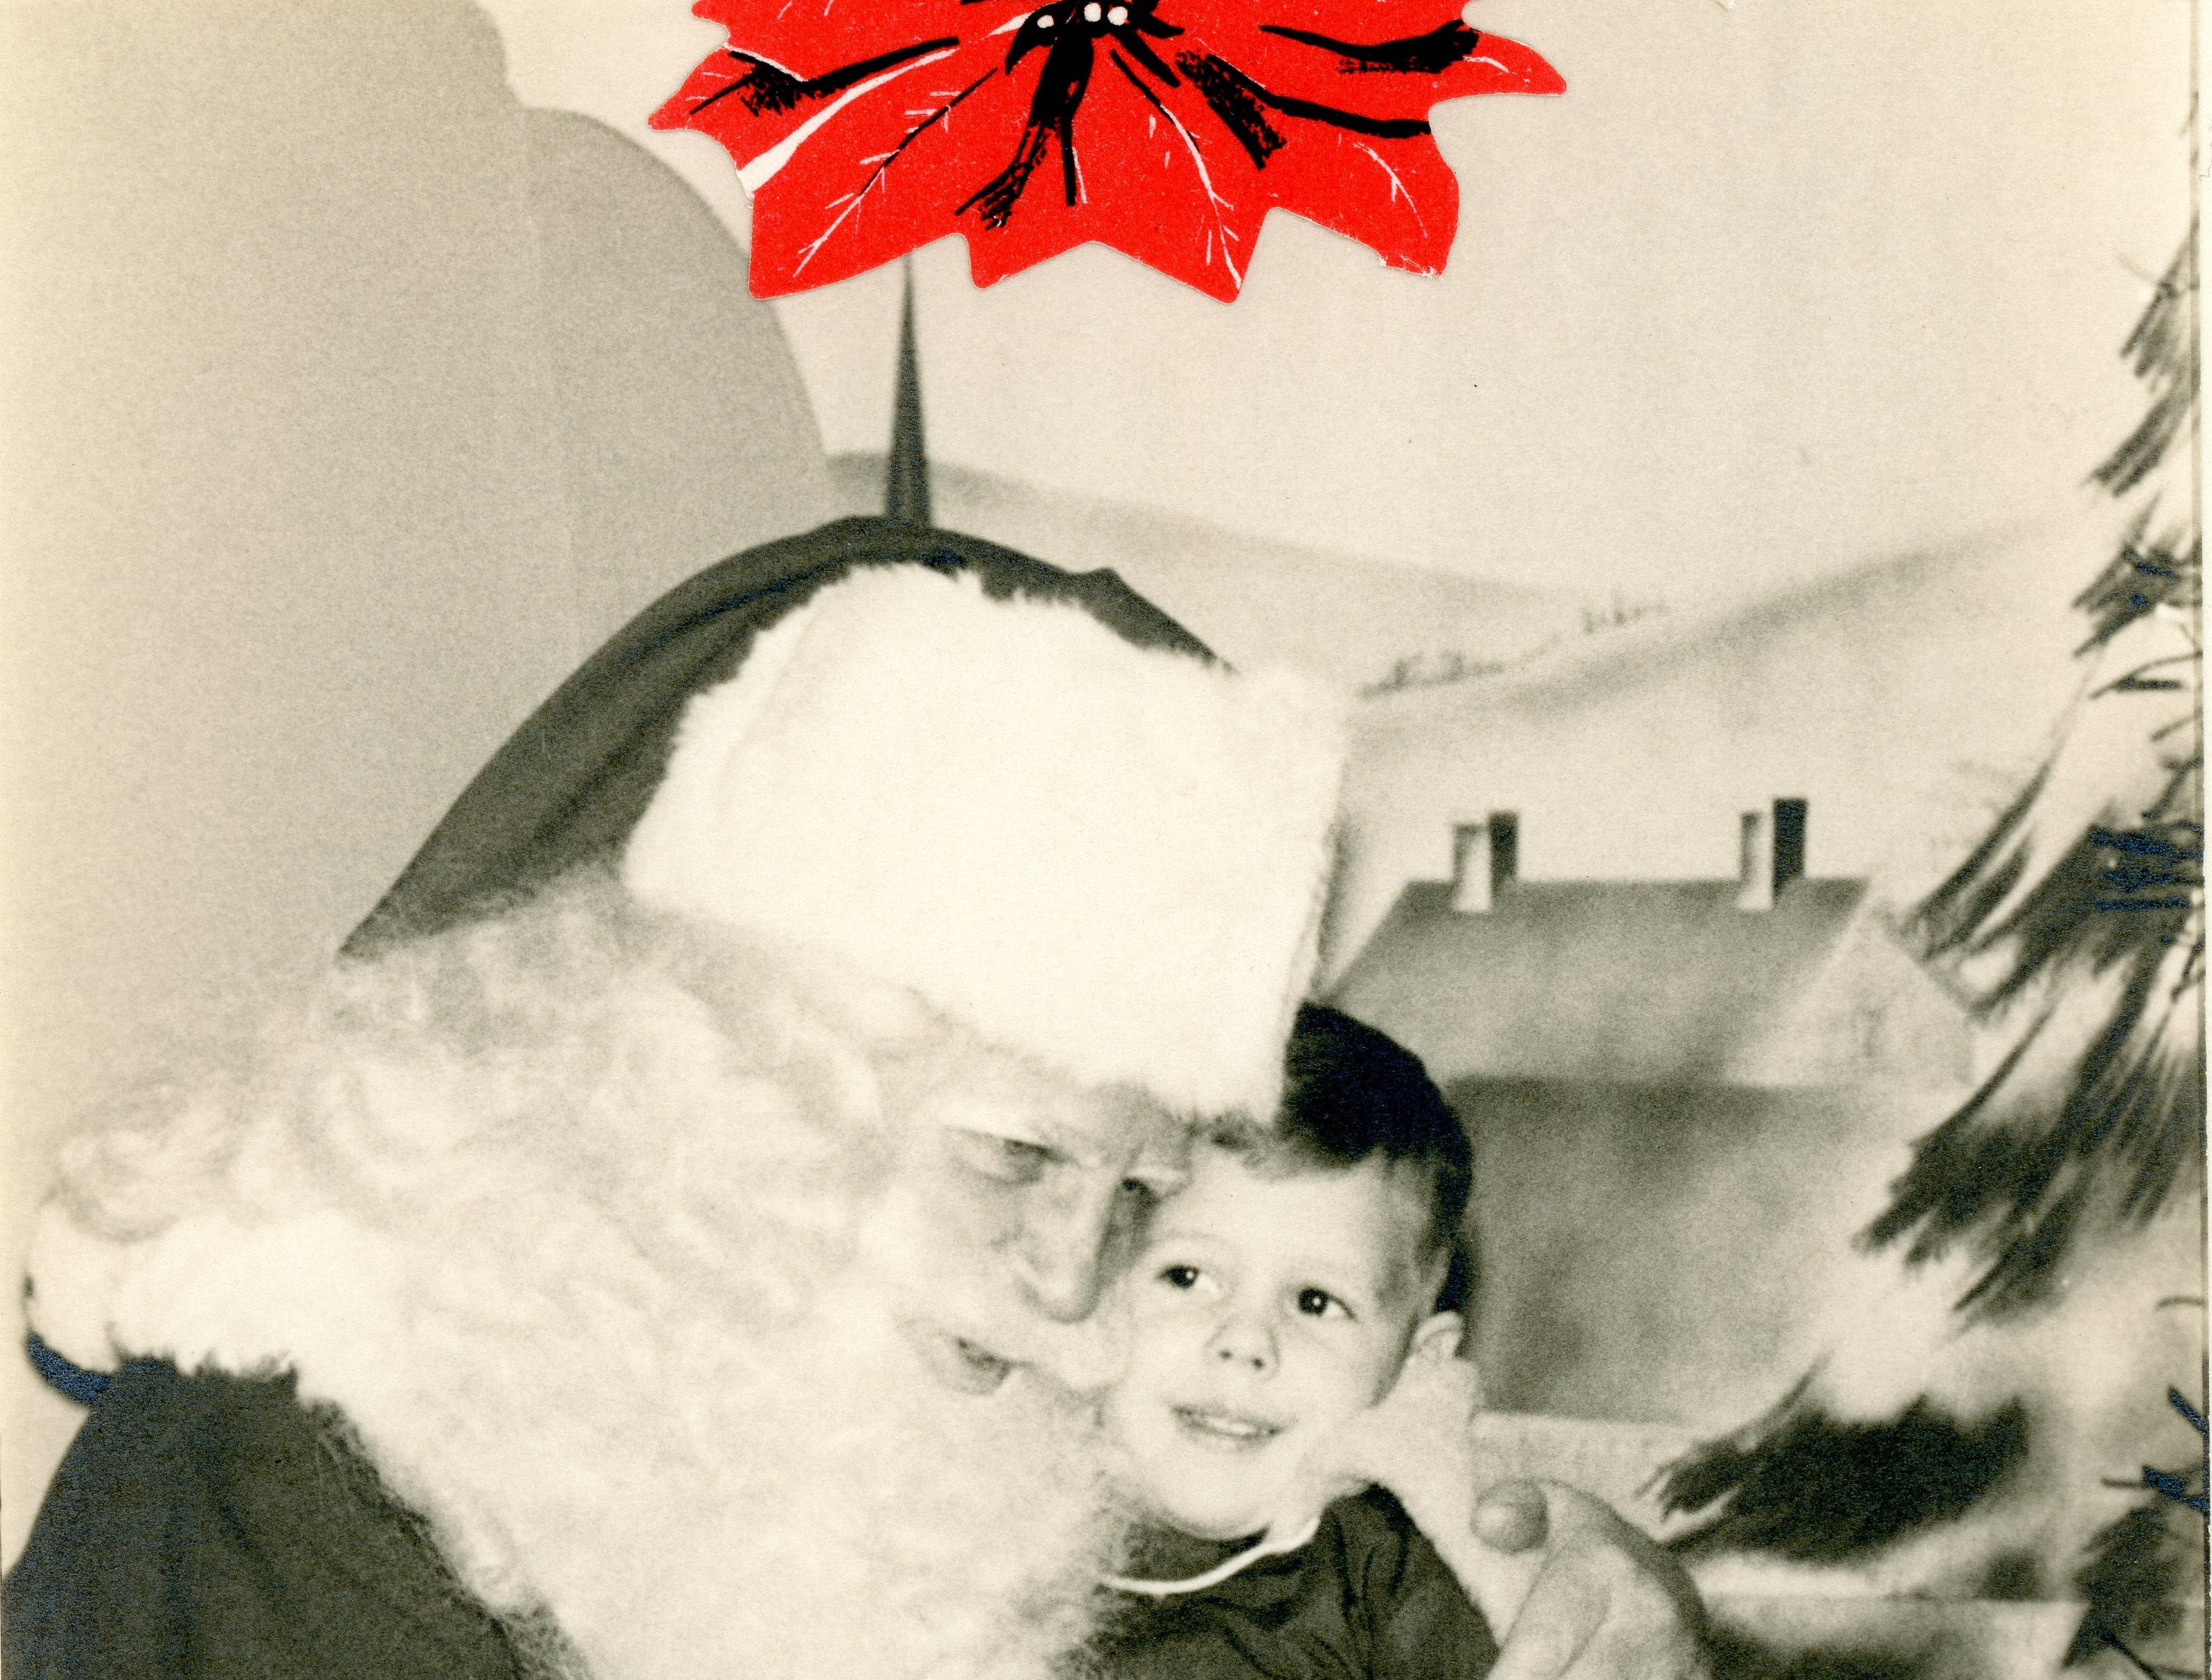 Jim Perkins takes a photo with Santa at Knapp's, date unknown.